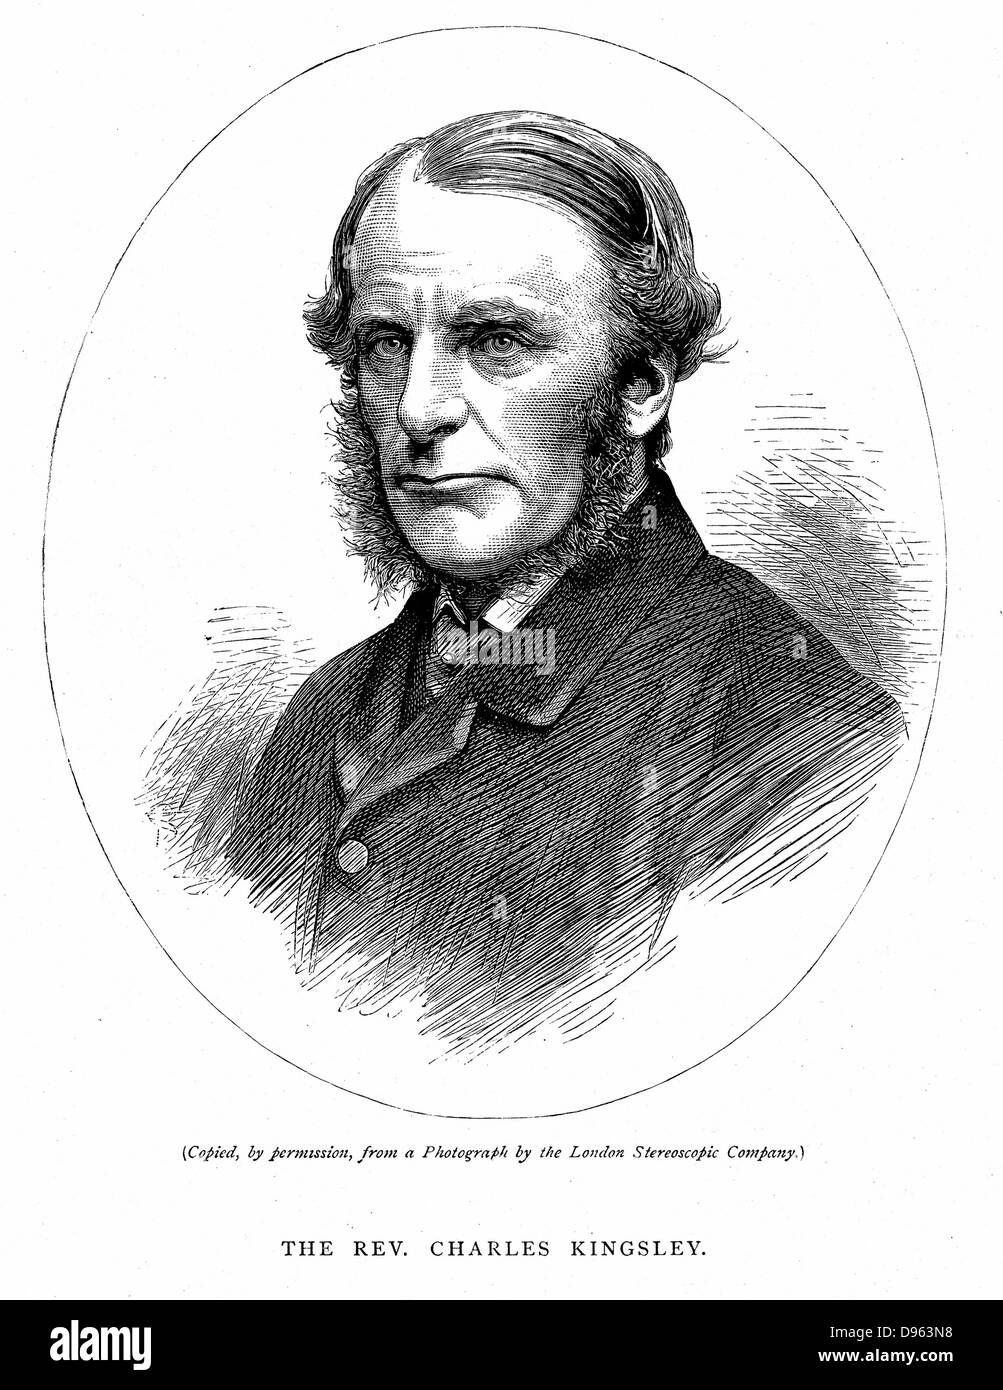 Charles Kingsley (1819-1875) British writer and cleric. Christian Socialist: Muscular Christianity. Believed in - Stock Image